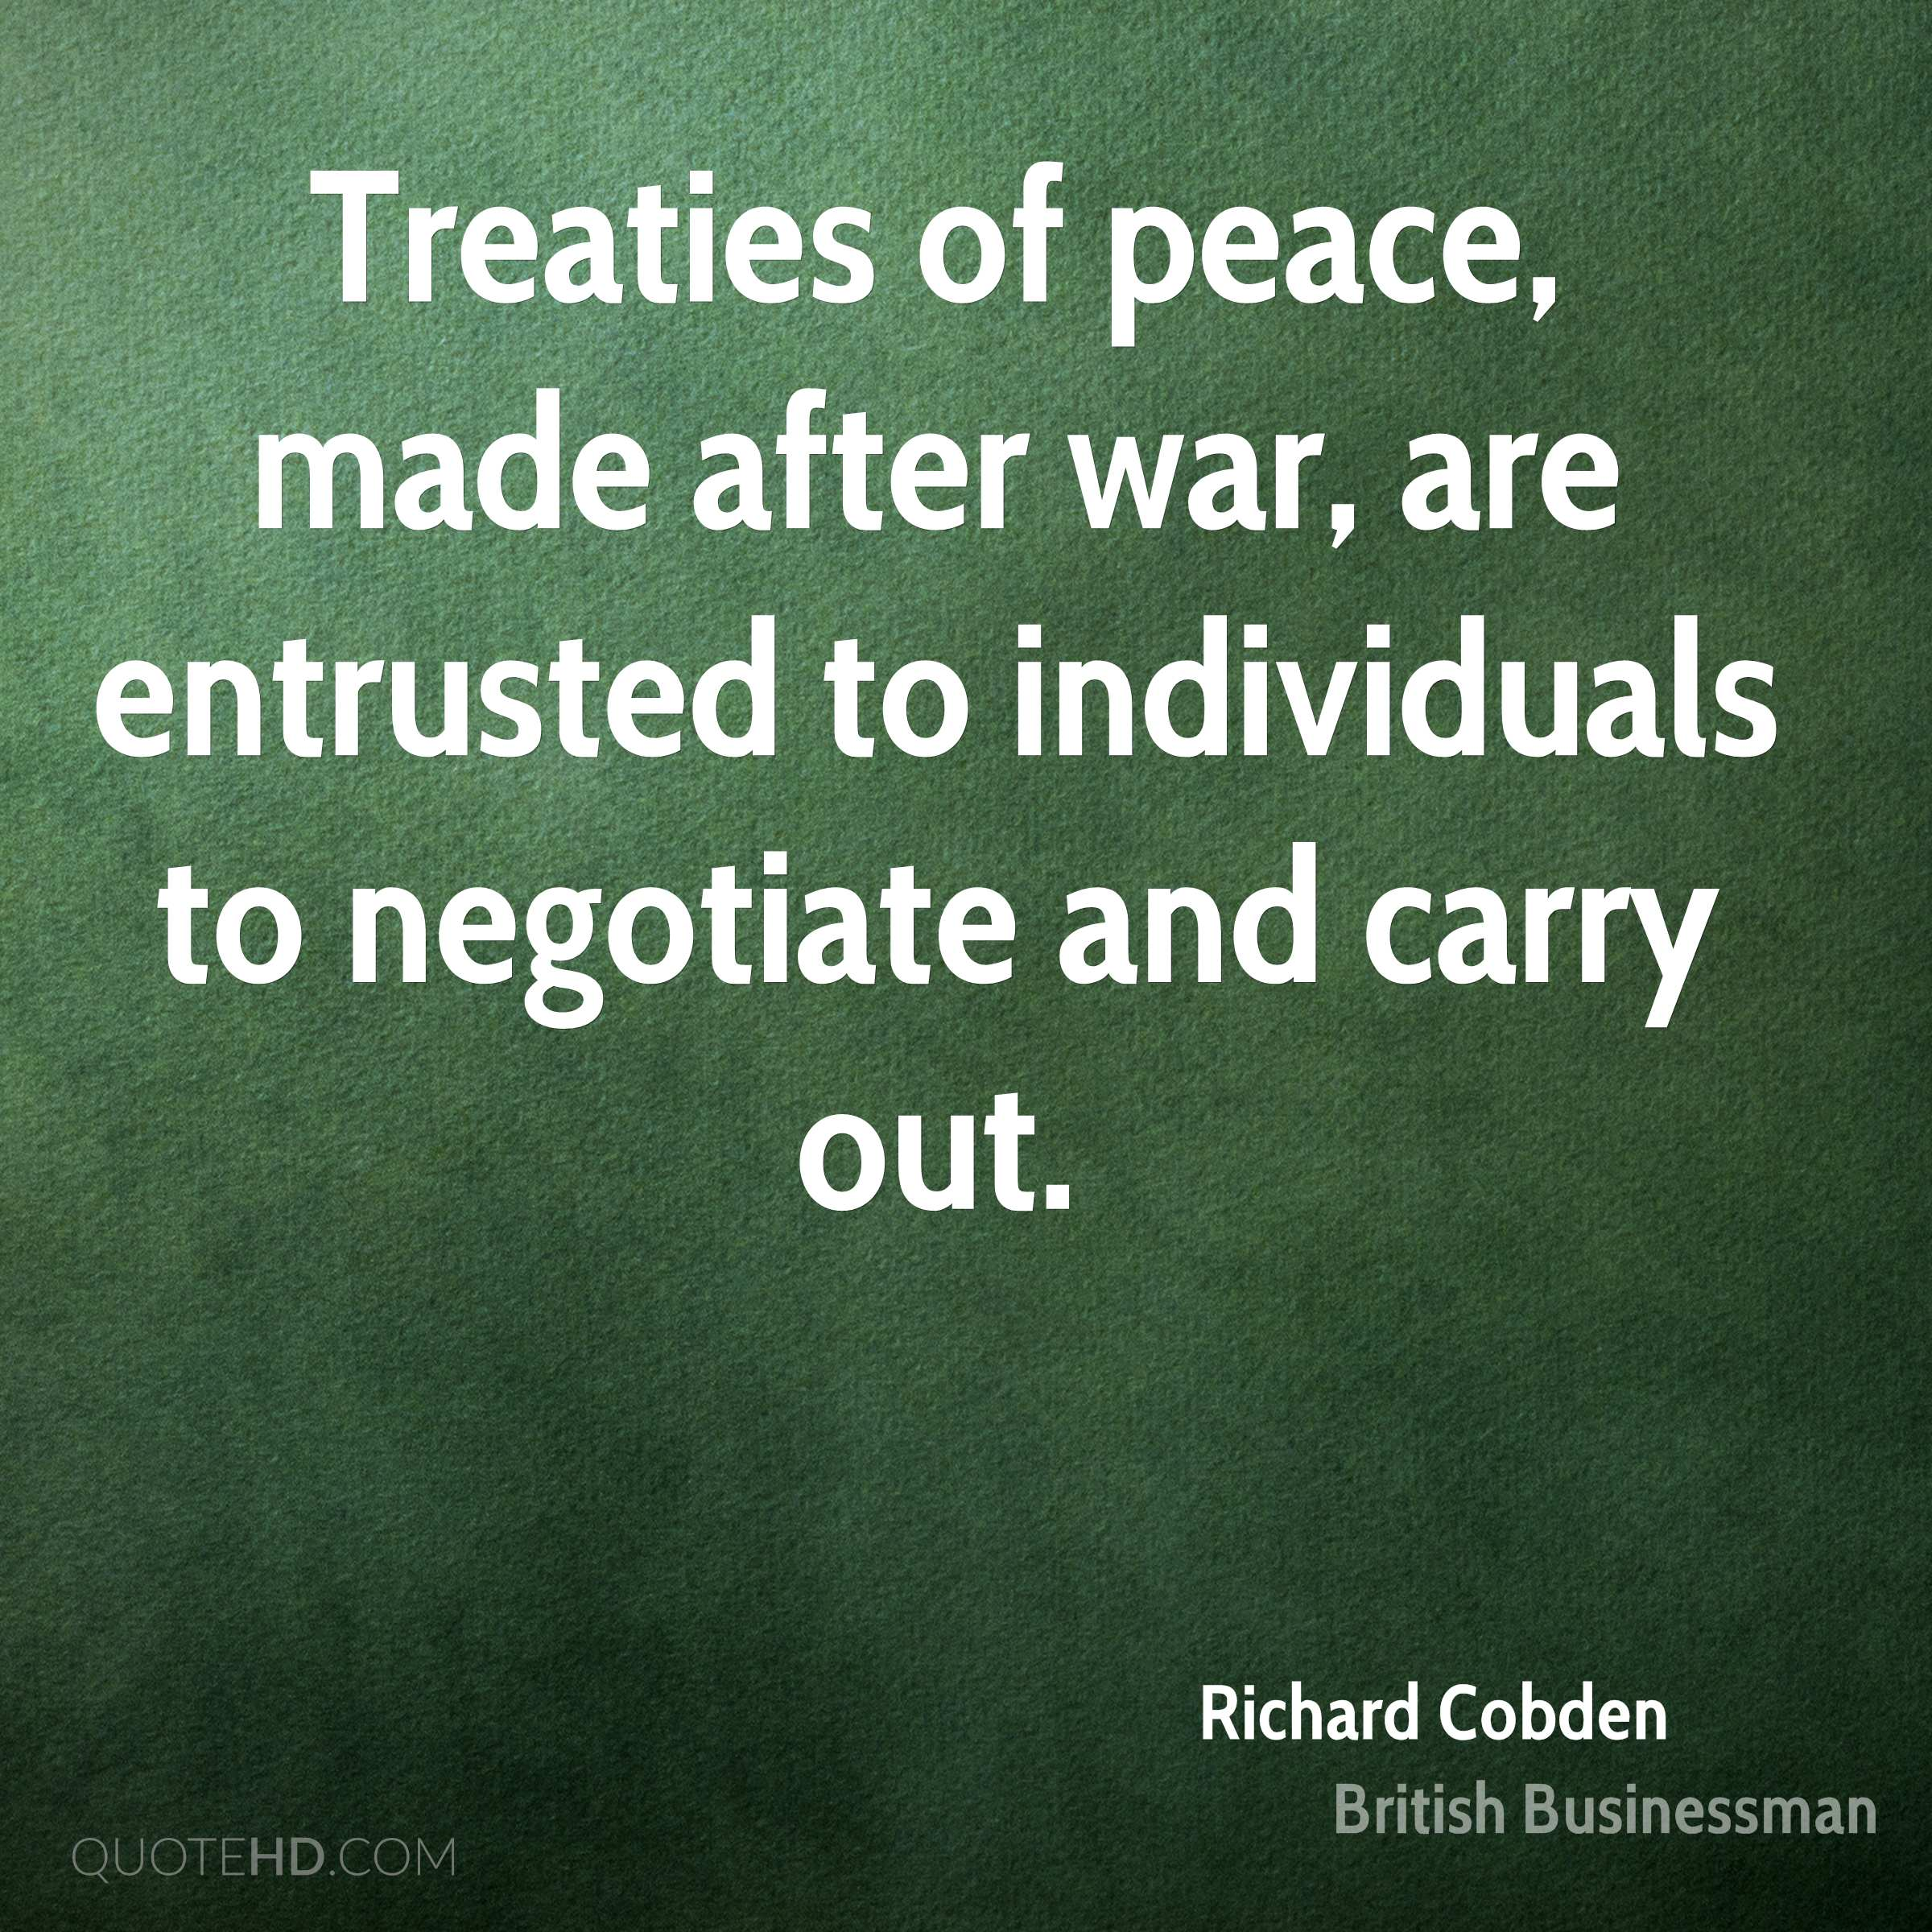 Treaties of peace, made after war, are entrusted to individuals to negotiate and carry out.